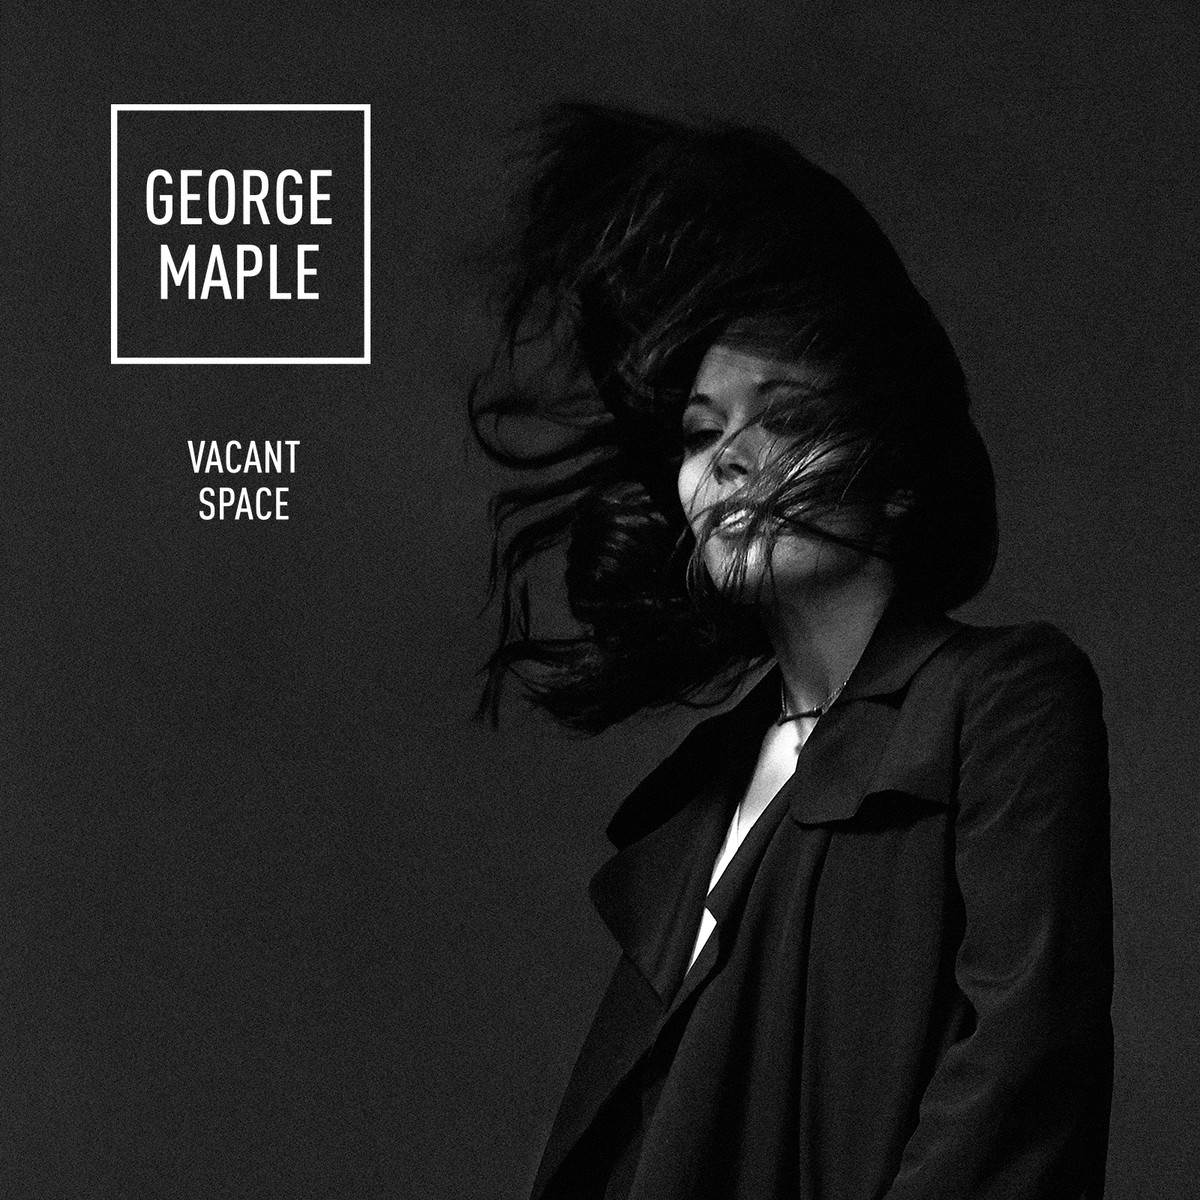 Hot Video Alert: George Maple - Vacant Space